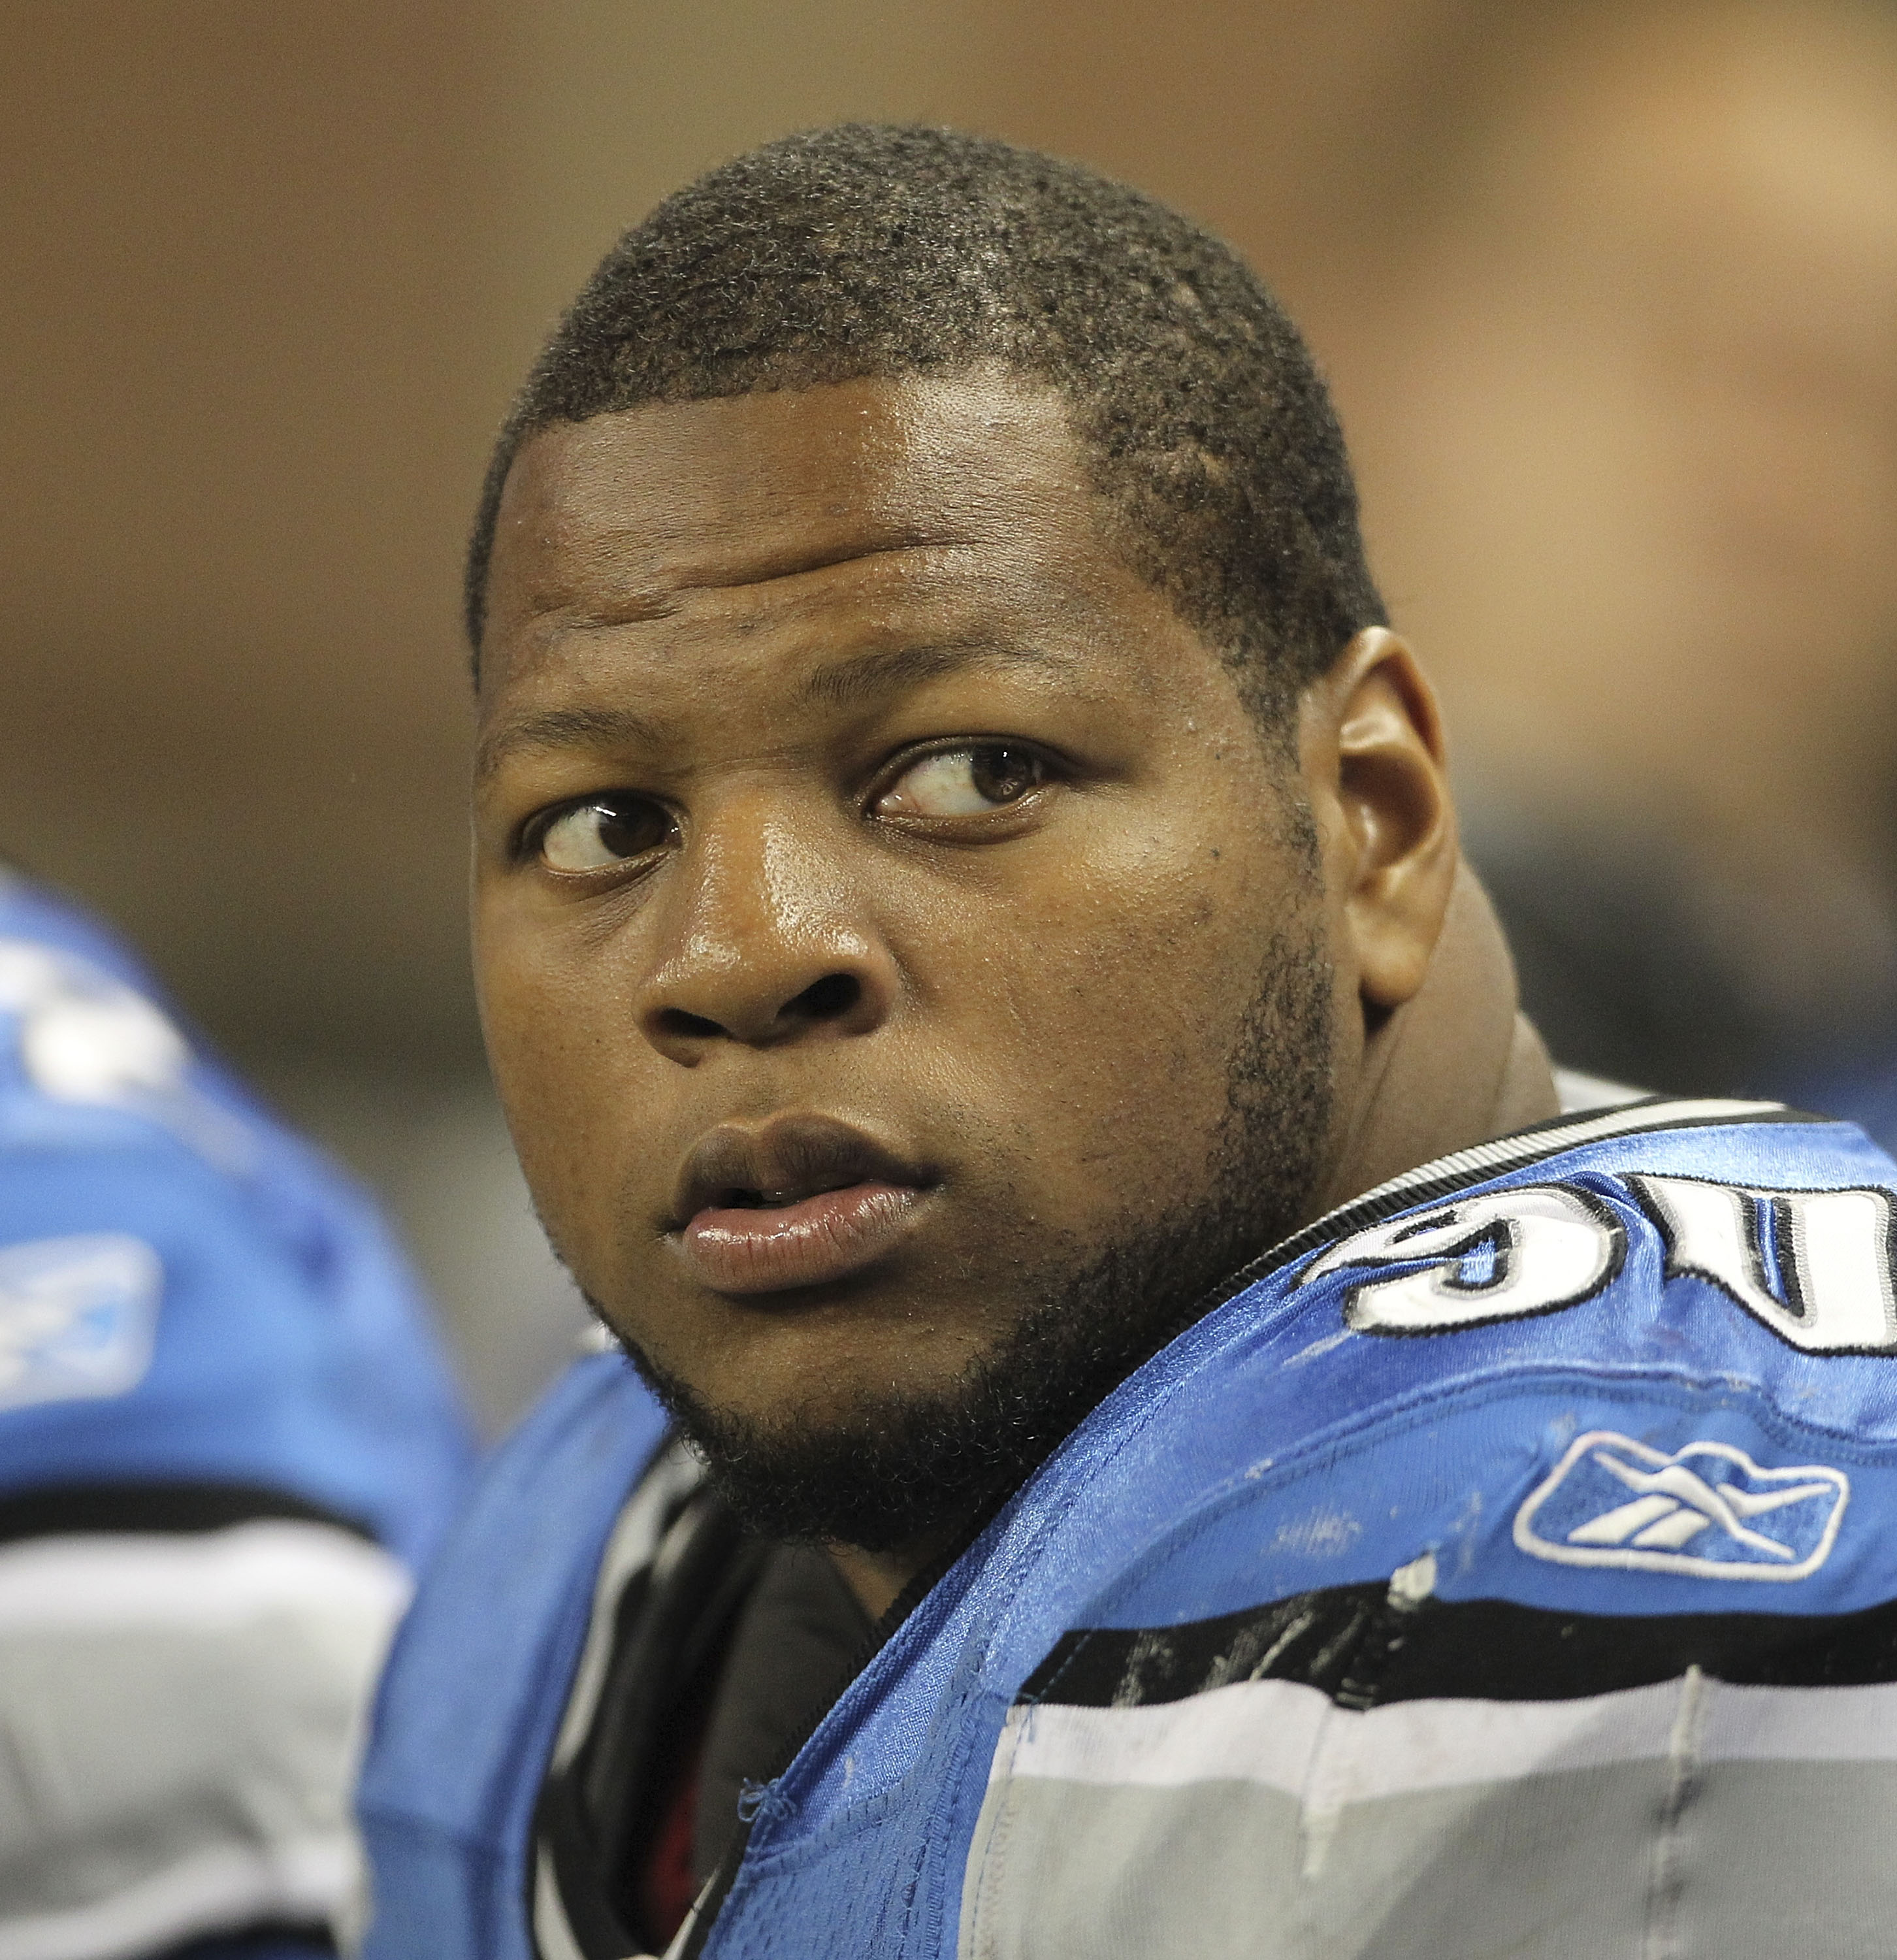 DETROIT - SEPTEMBER 02: Ndamukong Suh #90 of the Detroit Lions watches the action during the preseason game against the Buffalo Bills at Ford Field on September 2, 2010 in Detroit, Michigan. The Lions defeated the Bills 28-23.  (Photo by Leon Halip/Getty